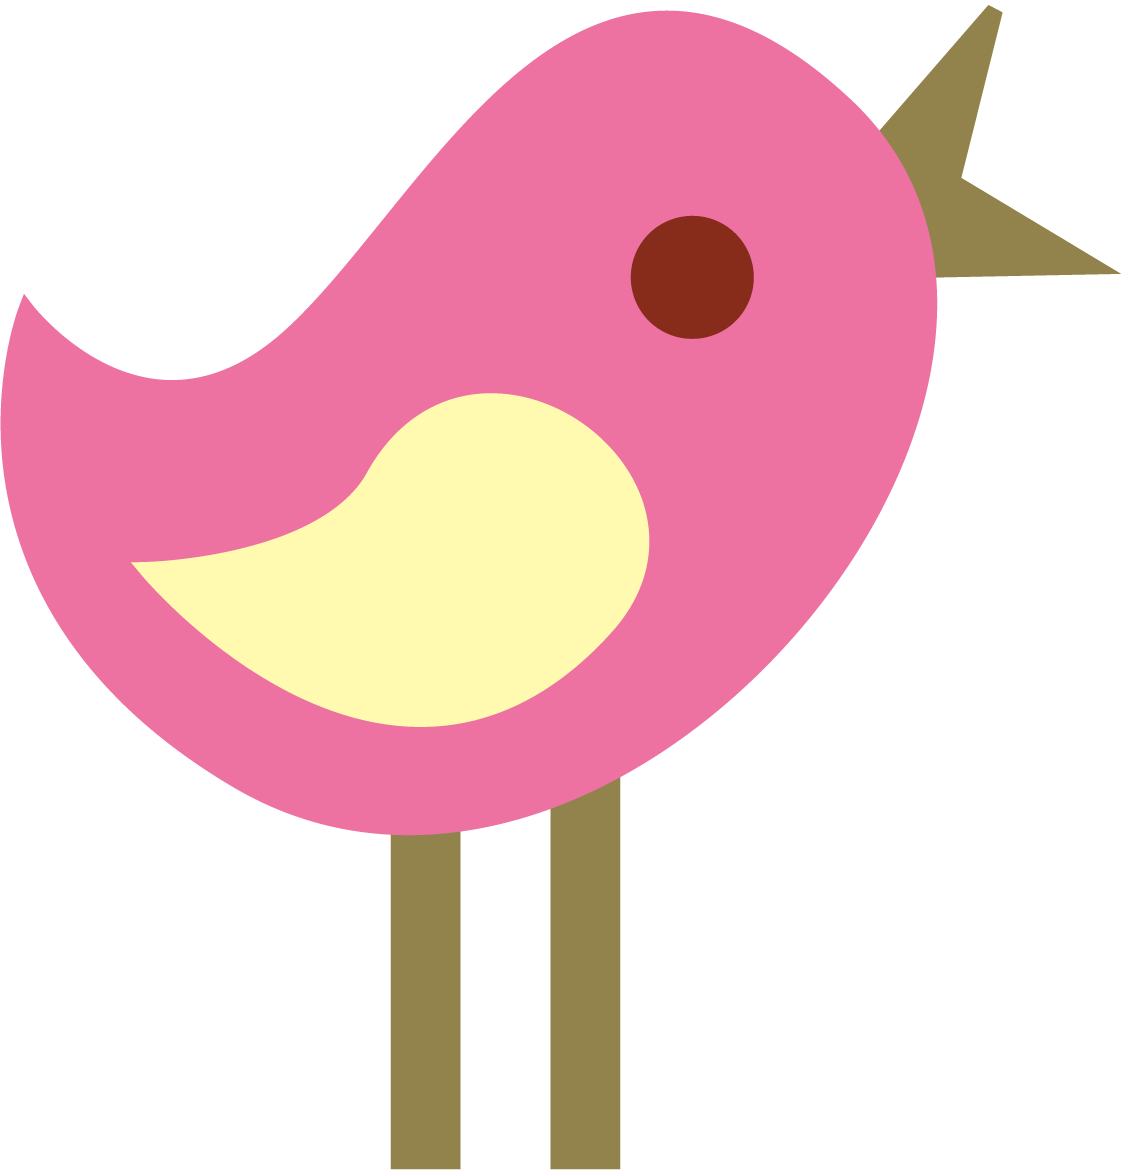 Cute tweet birds clip art